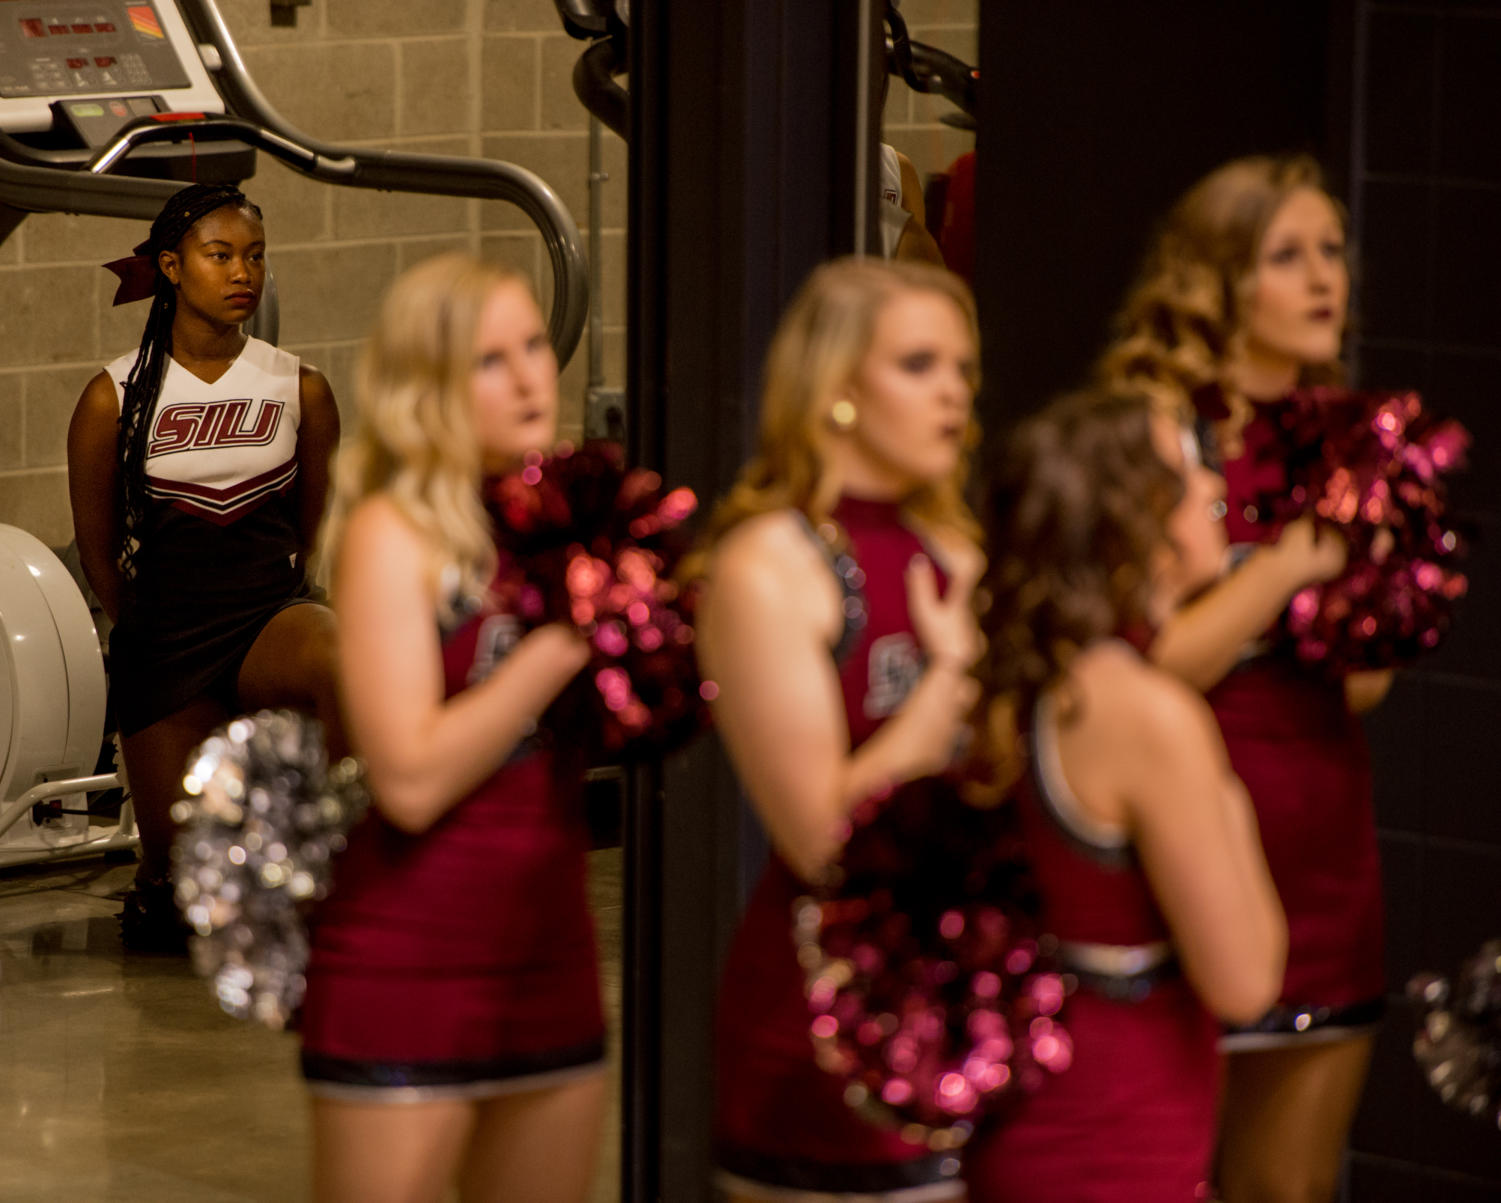 Sophomore cheerleader Alaysia Brandy kneels behind Saluki Shakers during the national anthem Monday, Nov. 27, 2017, during the Salukis' loss to the SIU Edwardville Cougars at SIU Arena. A recent change in protocol put into place by SIU Athletics has removed the cheerleaders from the playing surface of sporting events during the national anthem. (Brian Mu–noz | @BrianMMunoz)